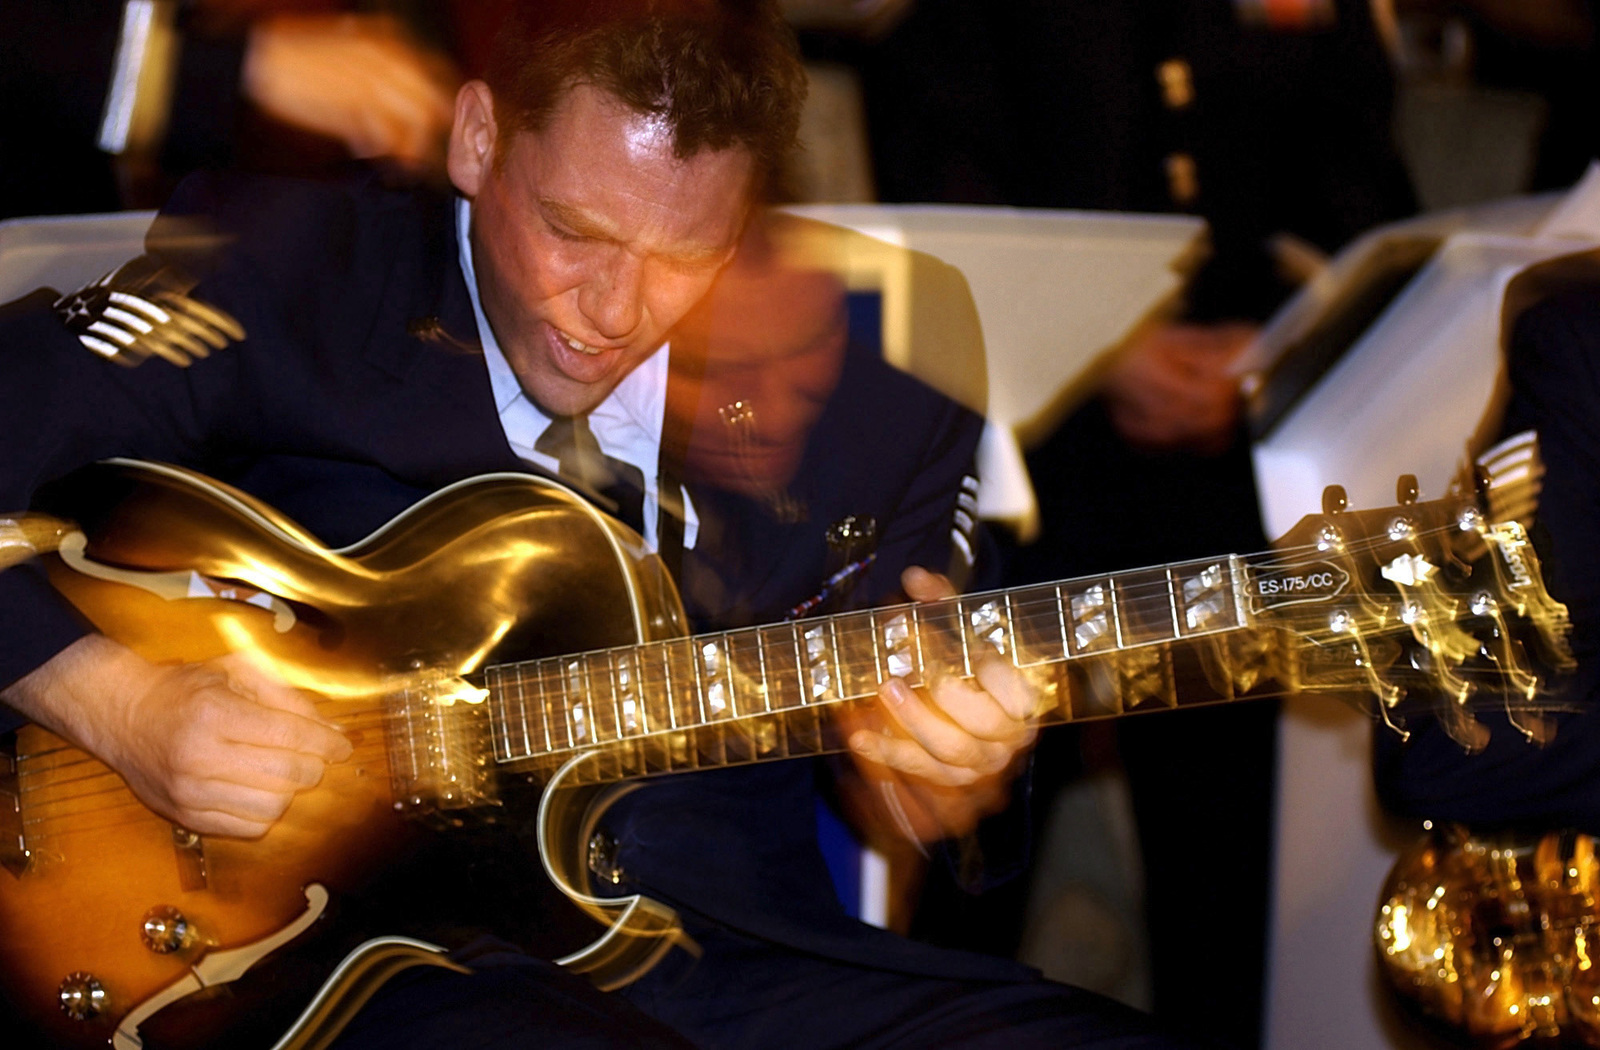 "At a festival held in Baku, Azerbaijan, STAFF Sergeant (SSGT) Gerard Birkenmeier Jr. with the United States Air Force in Europe (USAFE) Jazz Band, The Ambassadors, performs A guitar solo,""Short Story."""